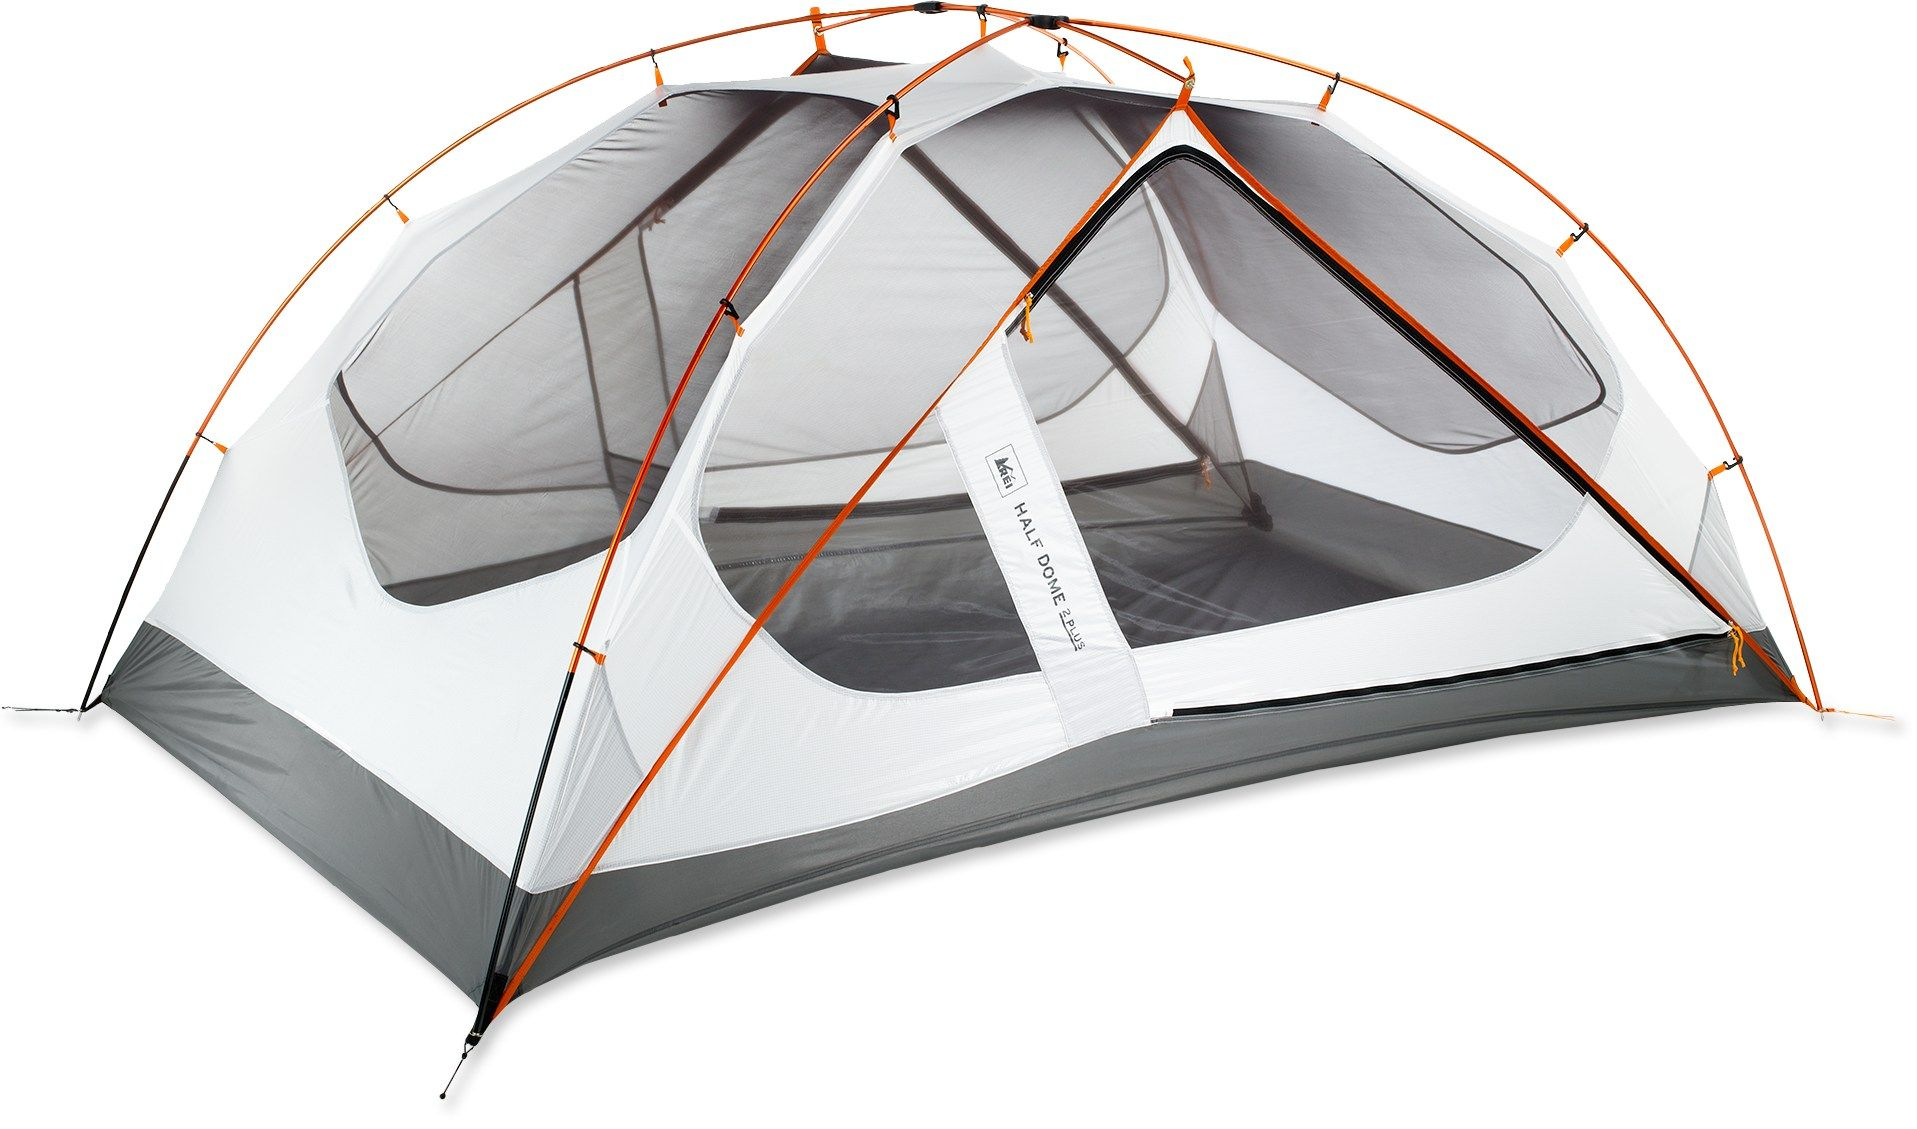 REI Half Dome 2 Plus. My current backpacking tent. Its far from ultralight but its been a great tent.  sc 1 st  Pinterest & GOLDEN APRICOT/PLATINUM REI Half Dome 2 Plus Tent 4 (112) Item ...